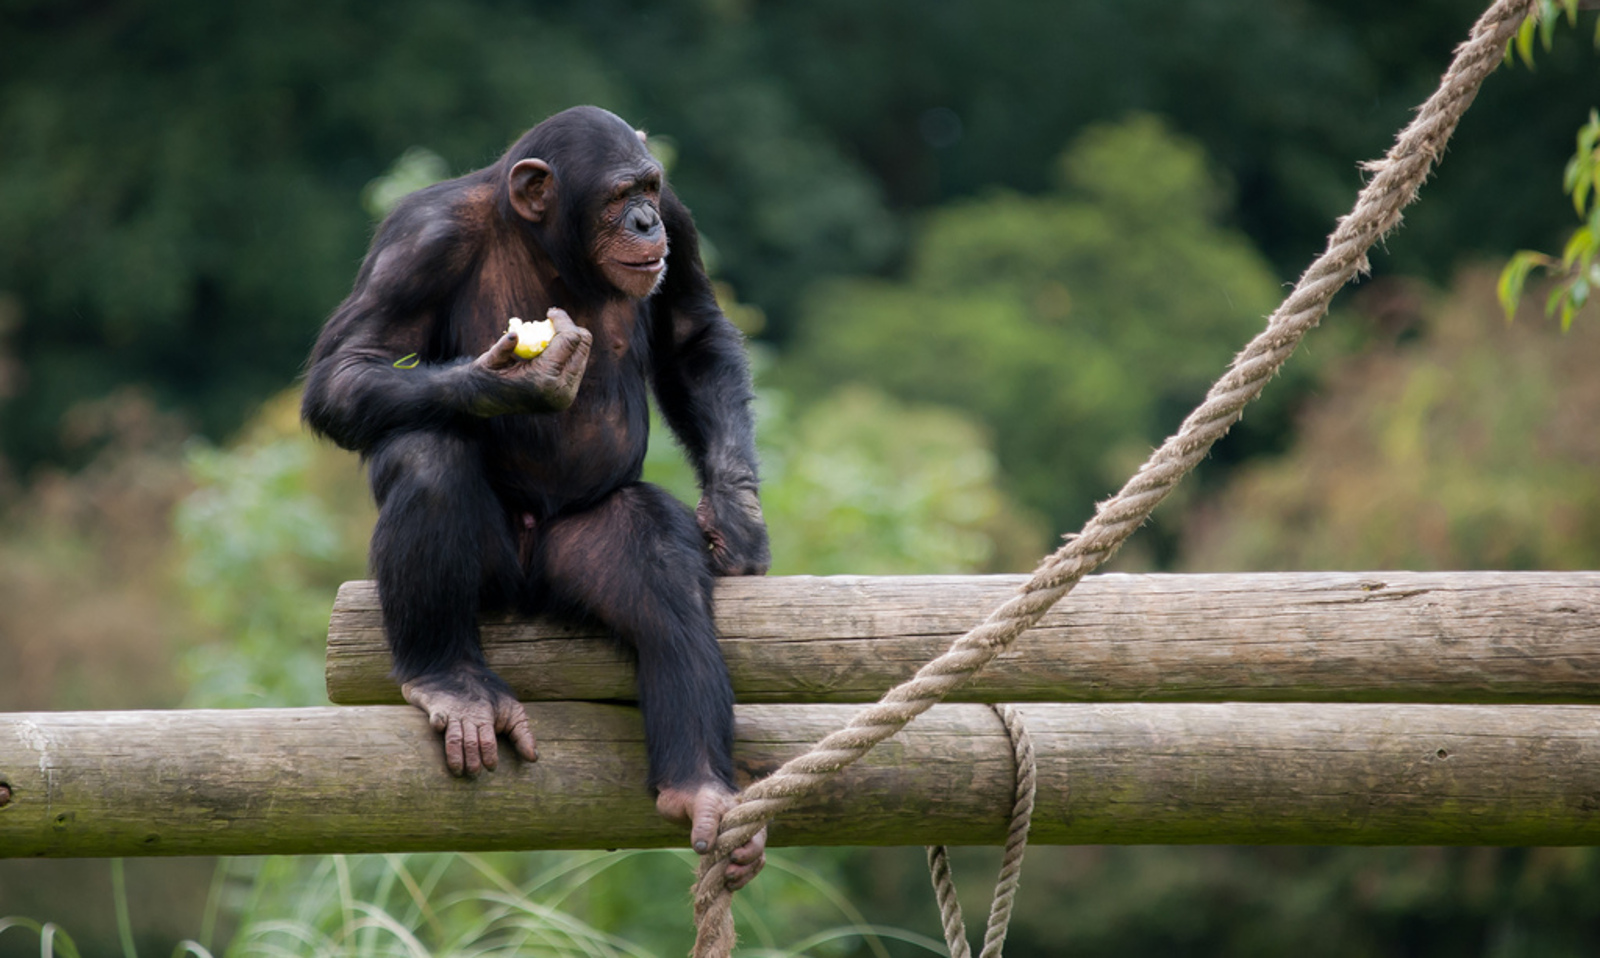 Captive Chimpanzees Given 'Endangered Status': What This Means for Their Protection